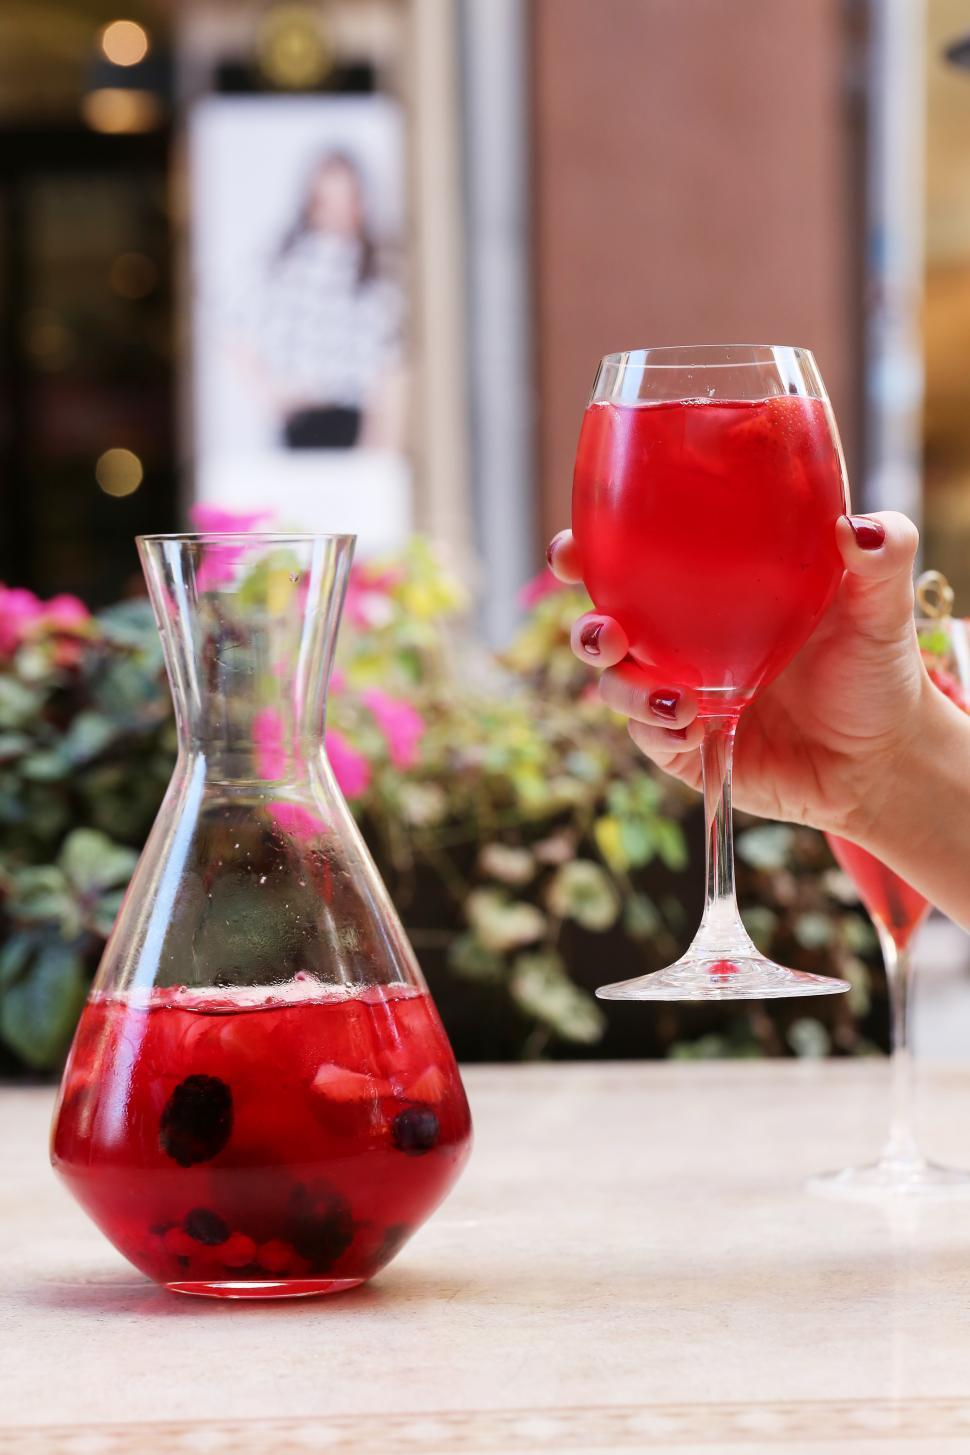 Download Free Stock Photo of Pitcher of sangria